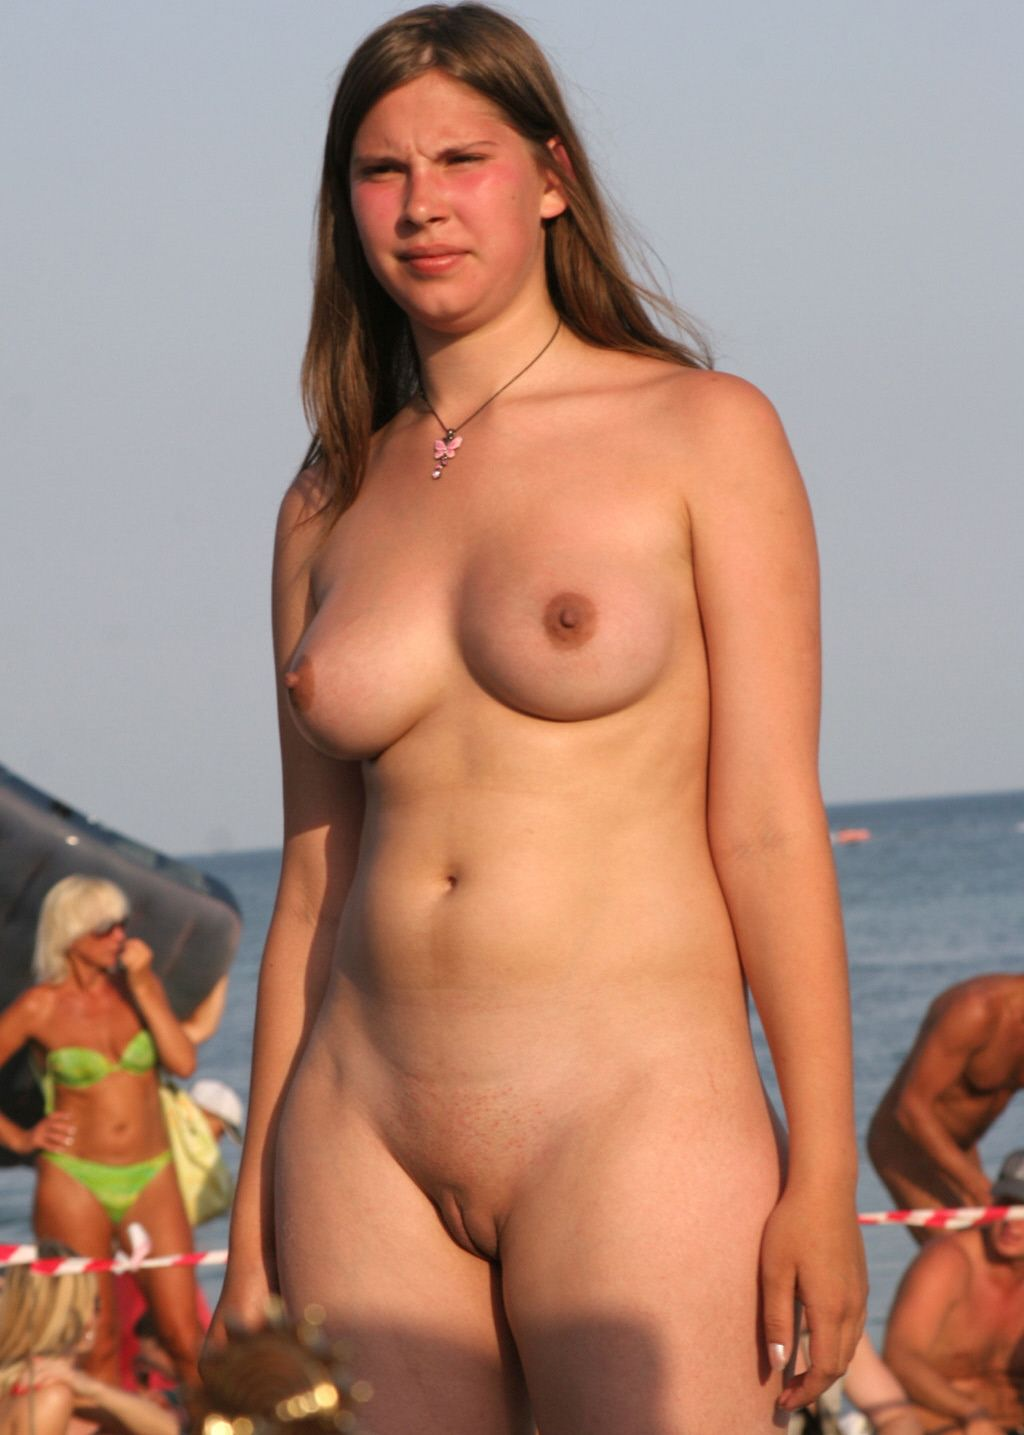 final, interracial anal and big tits remarkable, valuable